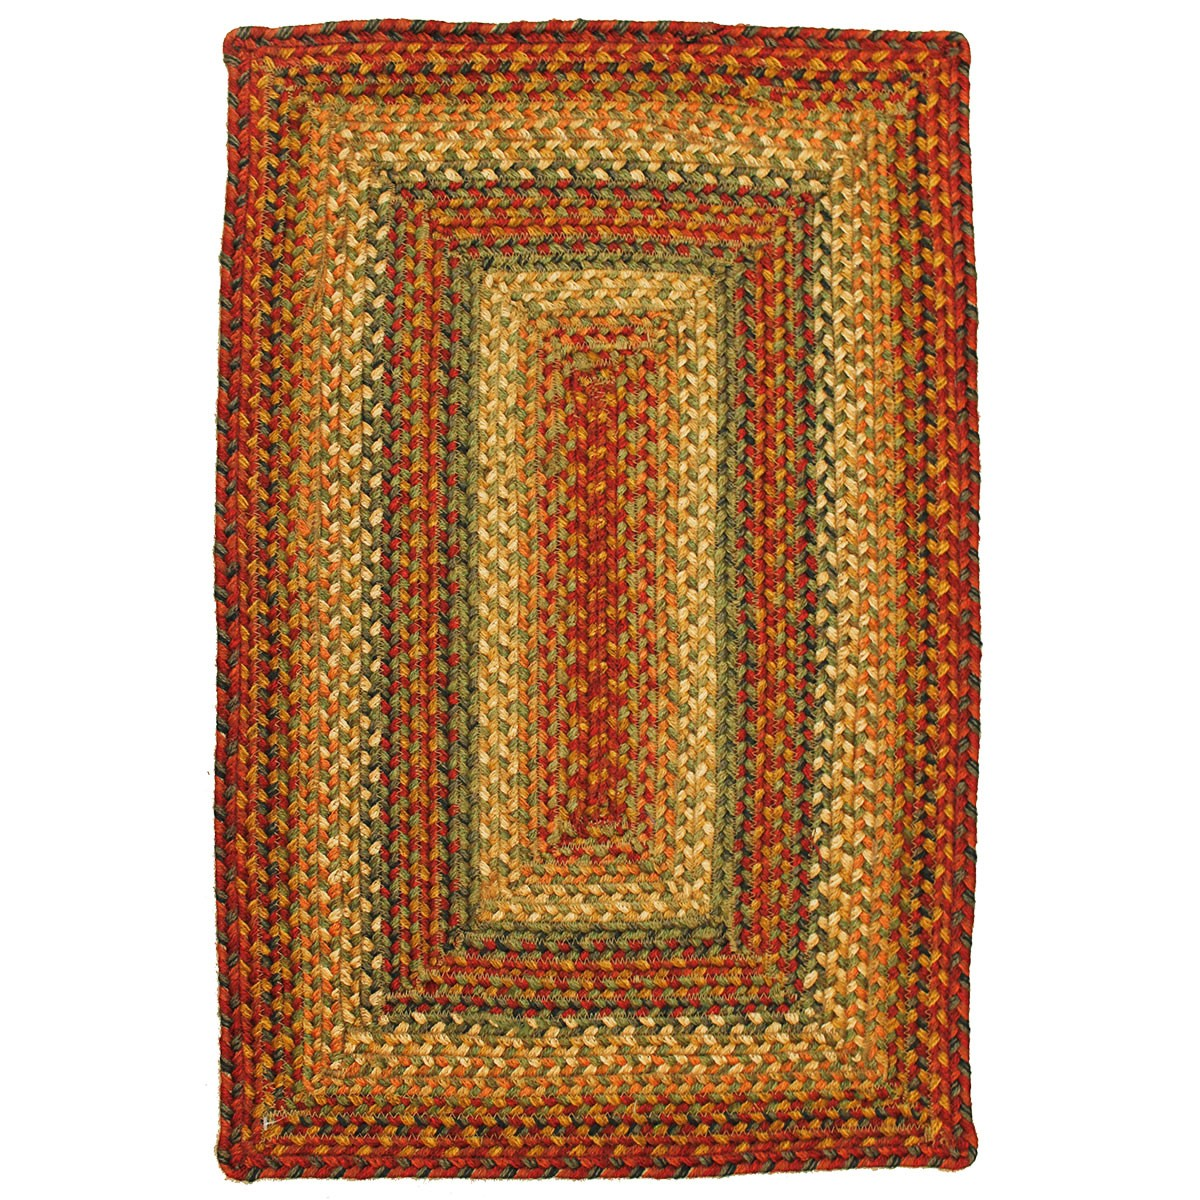 Graceland Jute Braided Rugs